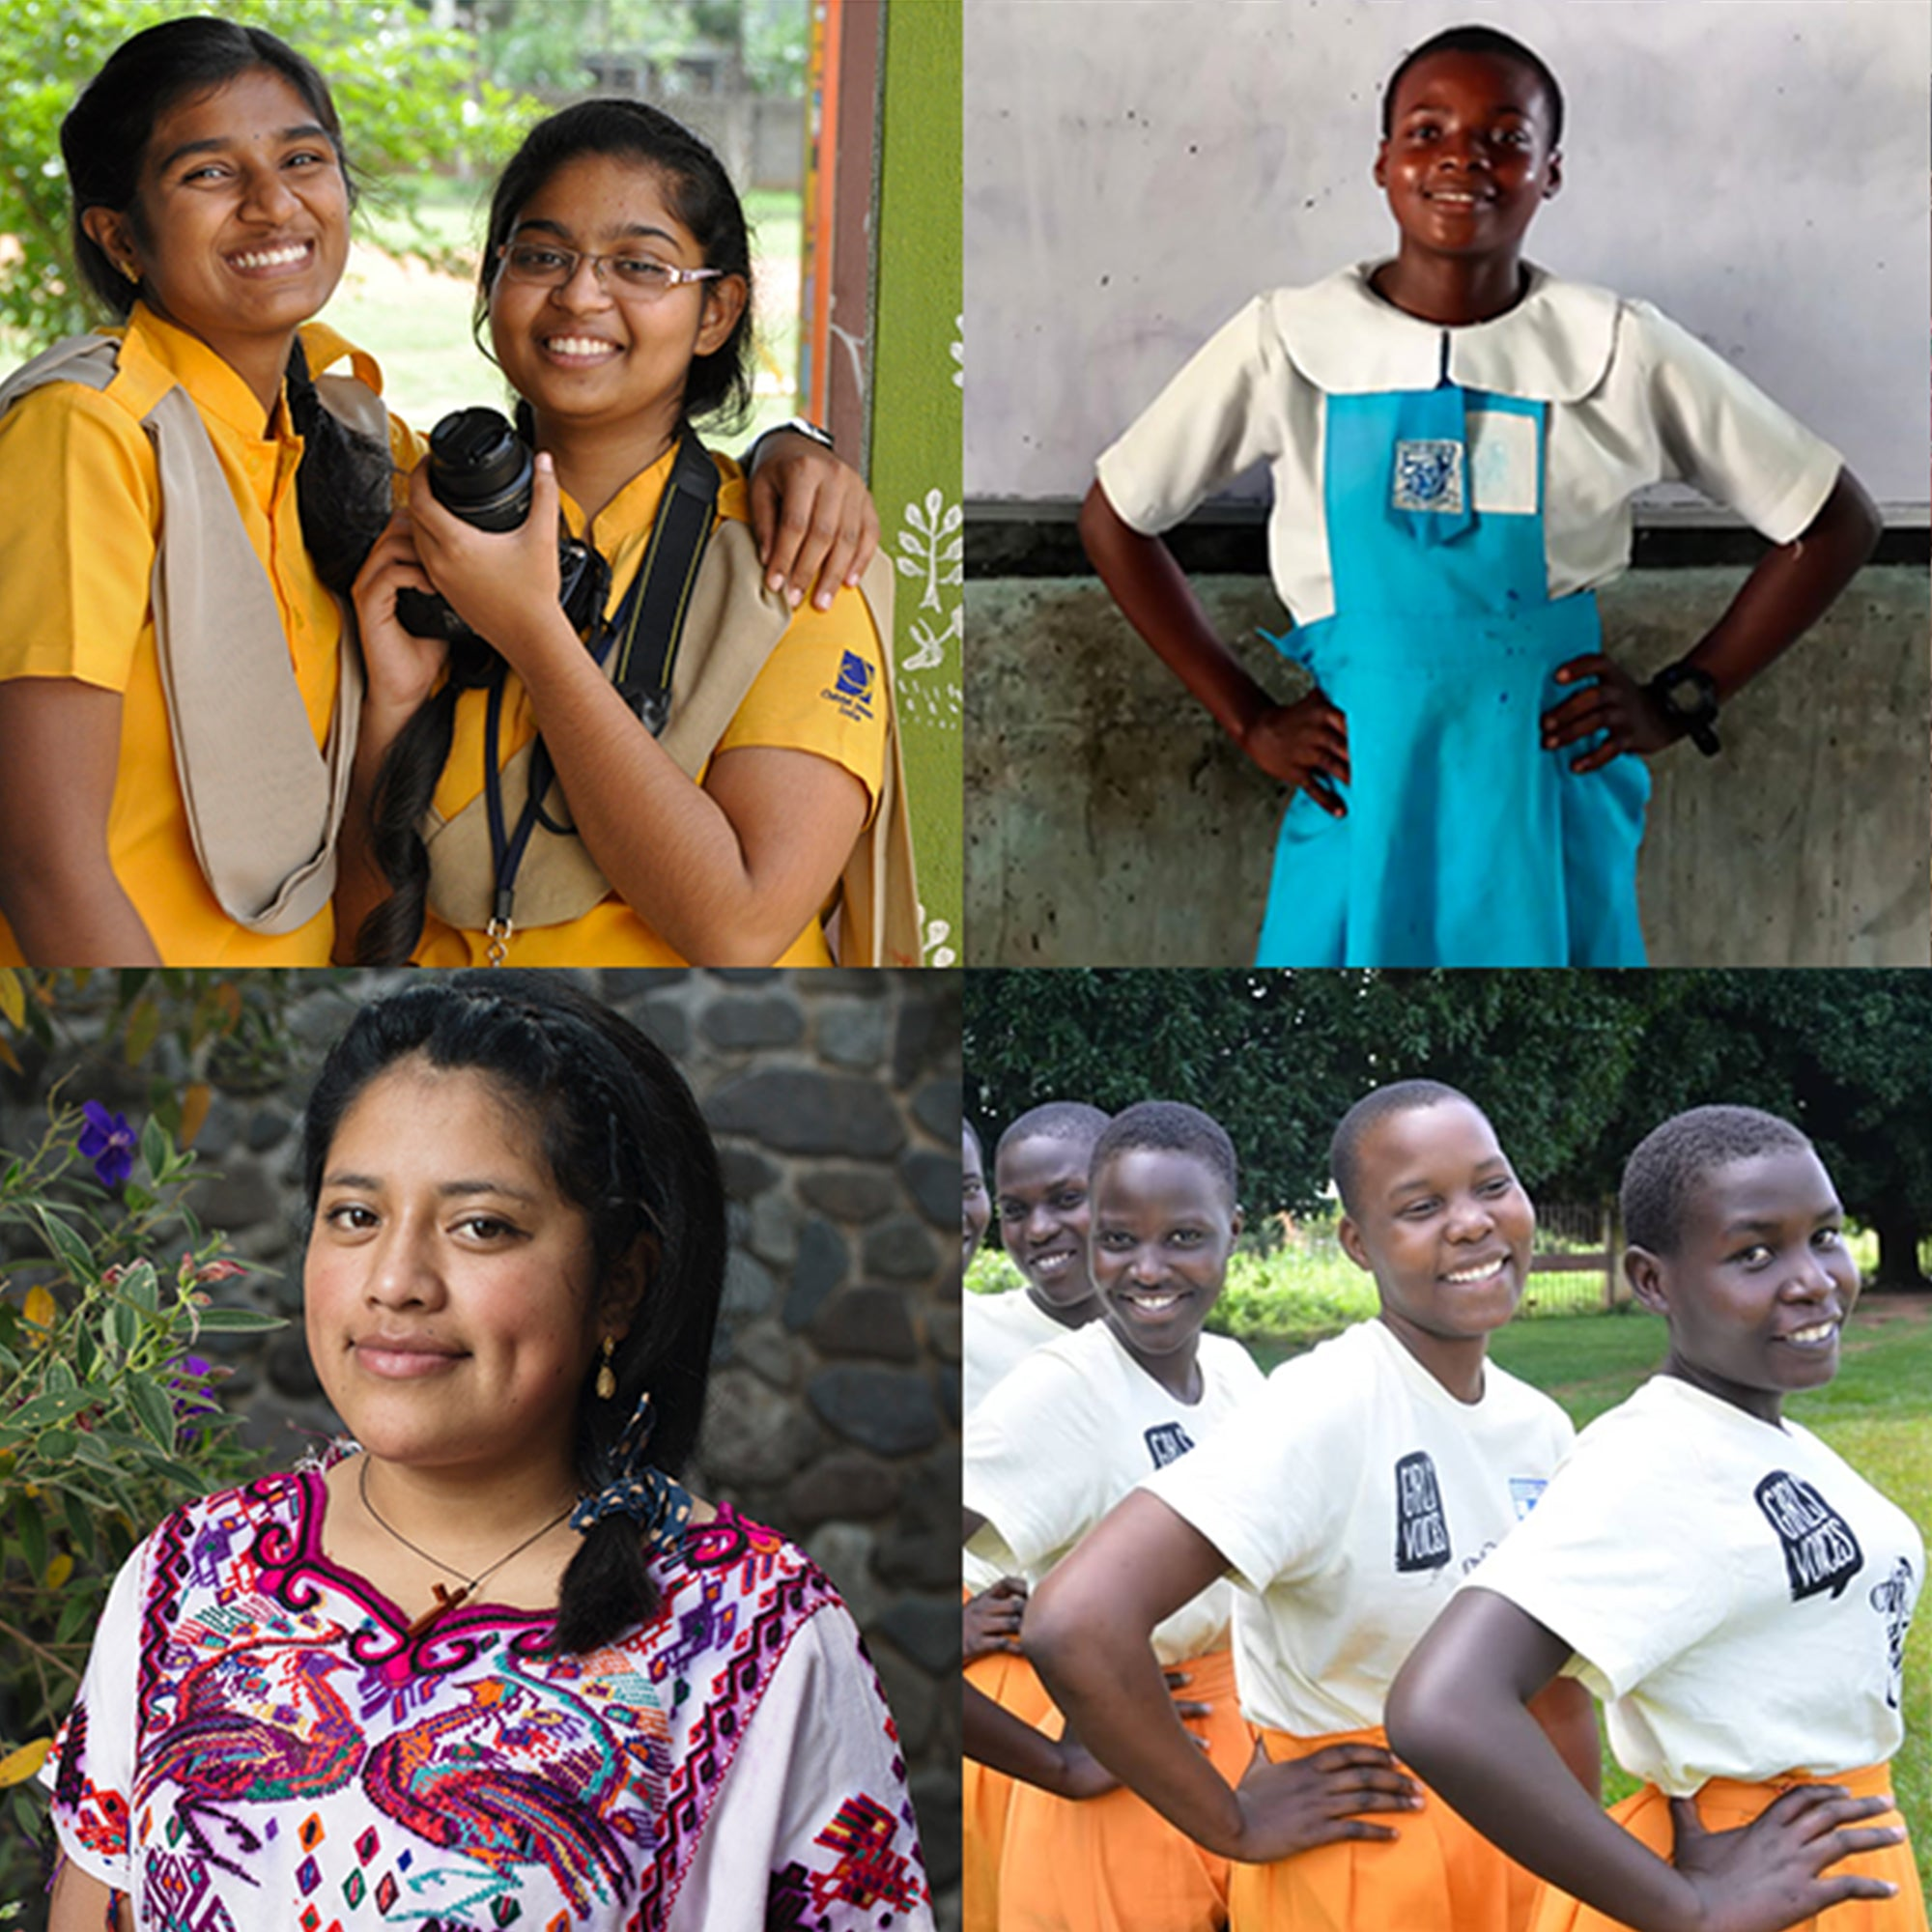 It's Giving Tuesday! Add $5 to fund 5 days of school for one girl?